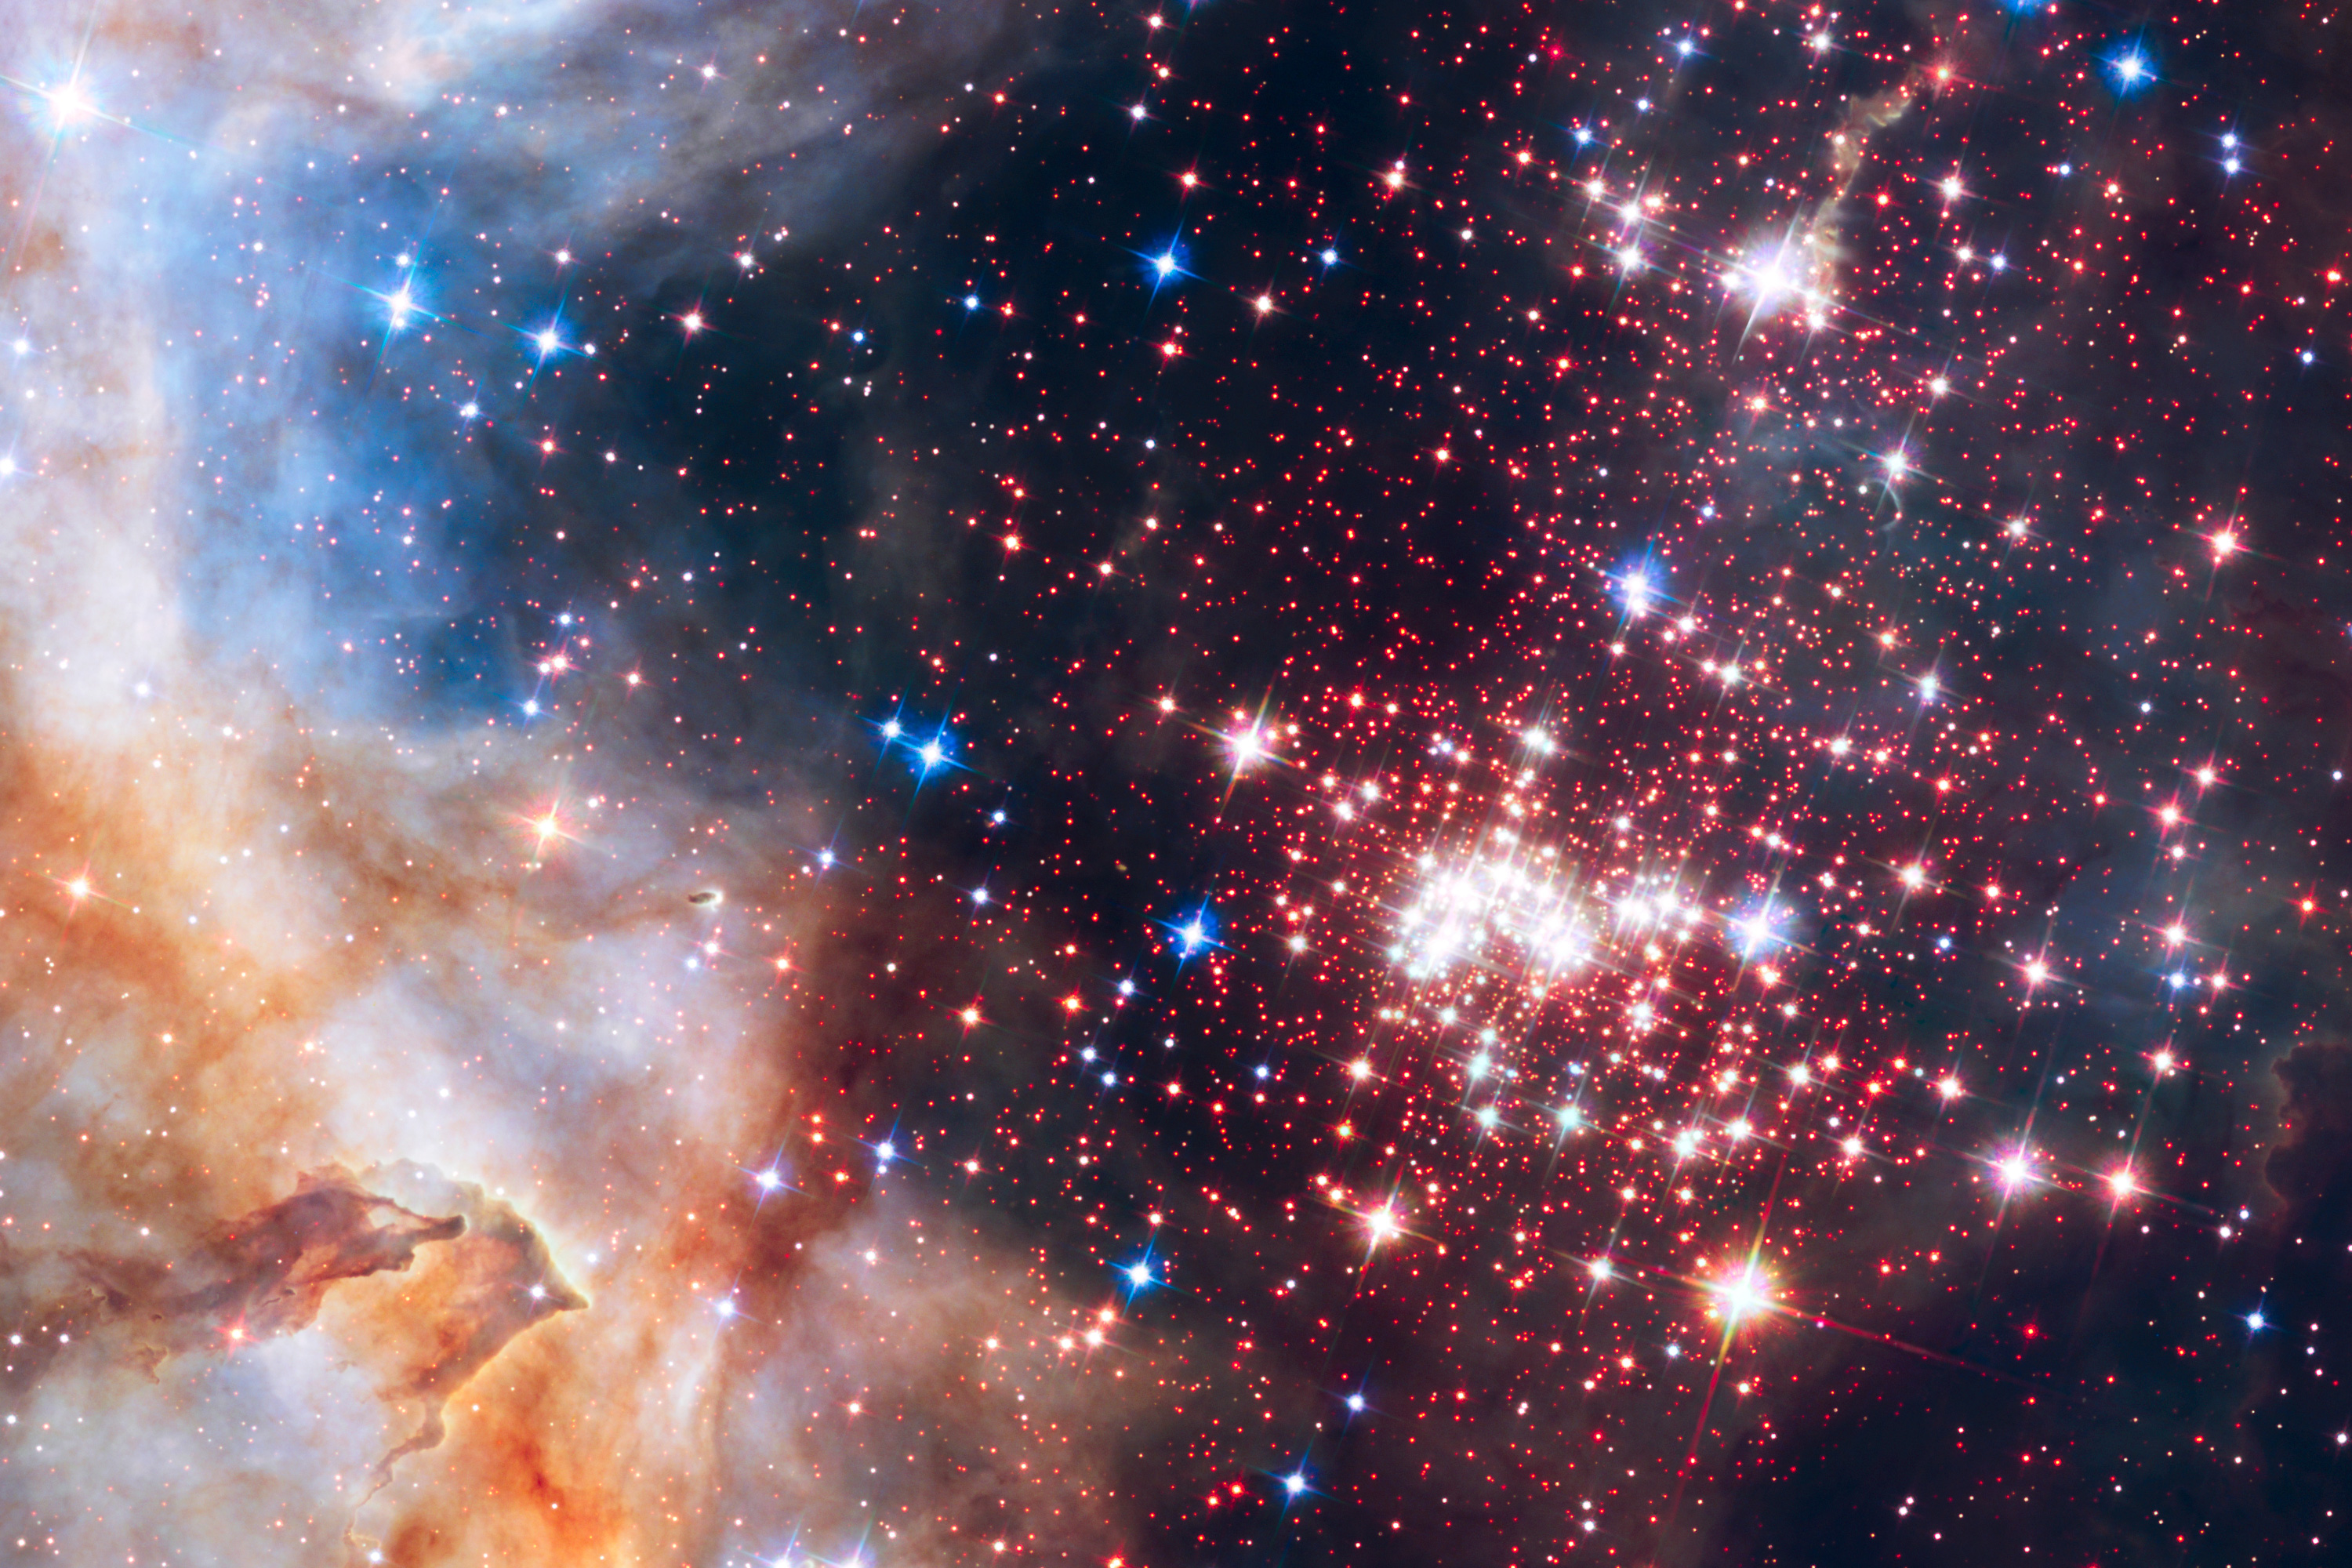 Star Cluster Backgrounds on Wallpapers Vista